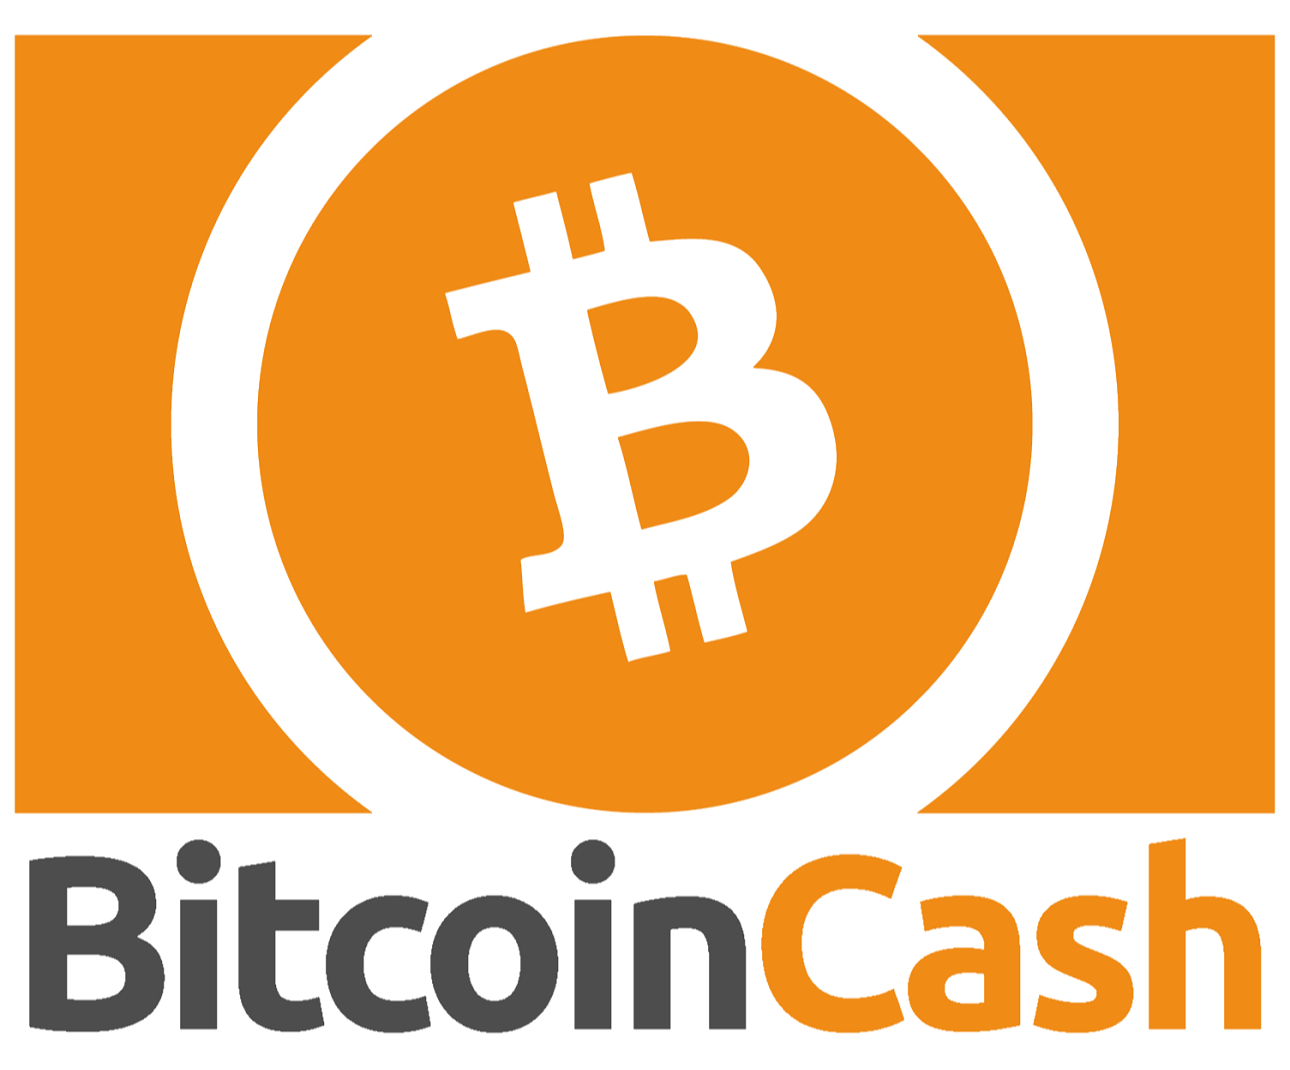 Bitcoin SV has over 10 times the transaction count of Bitcoin Cash despite miners favoring BCH